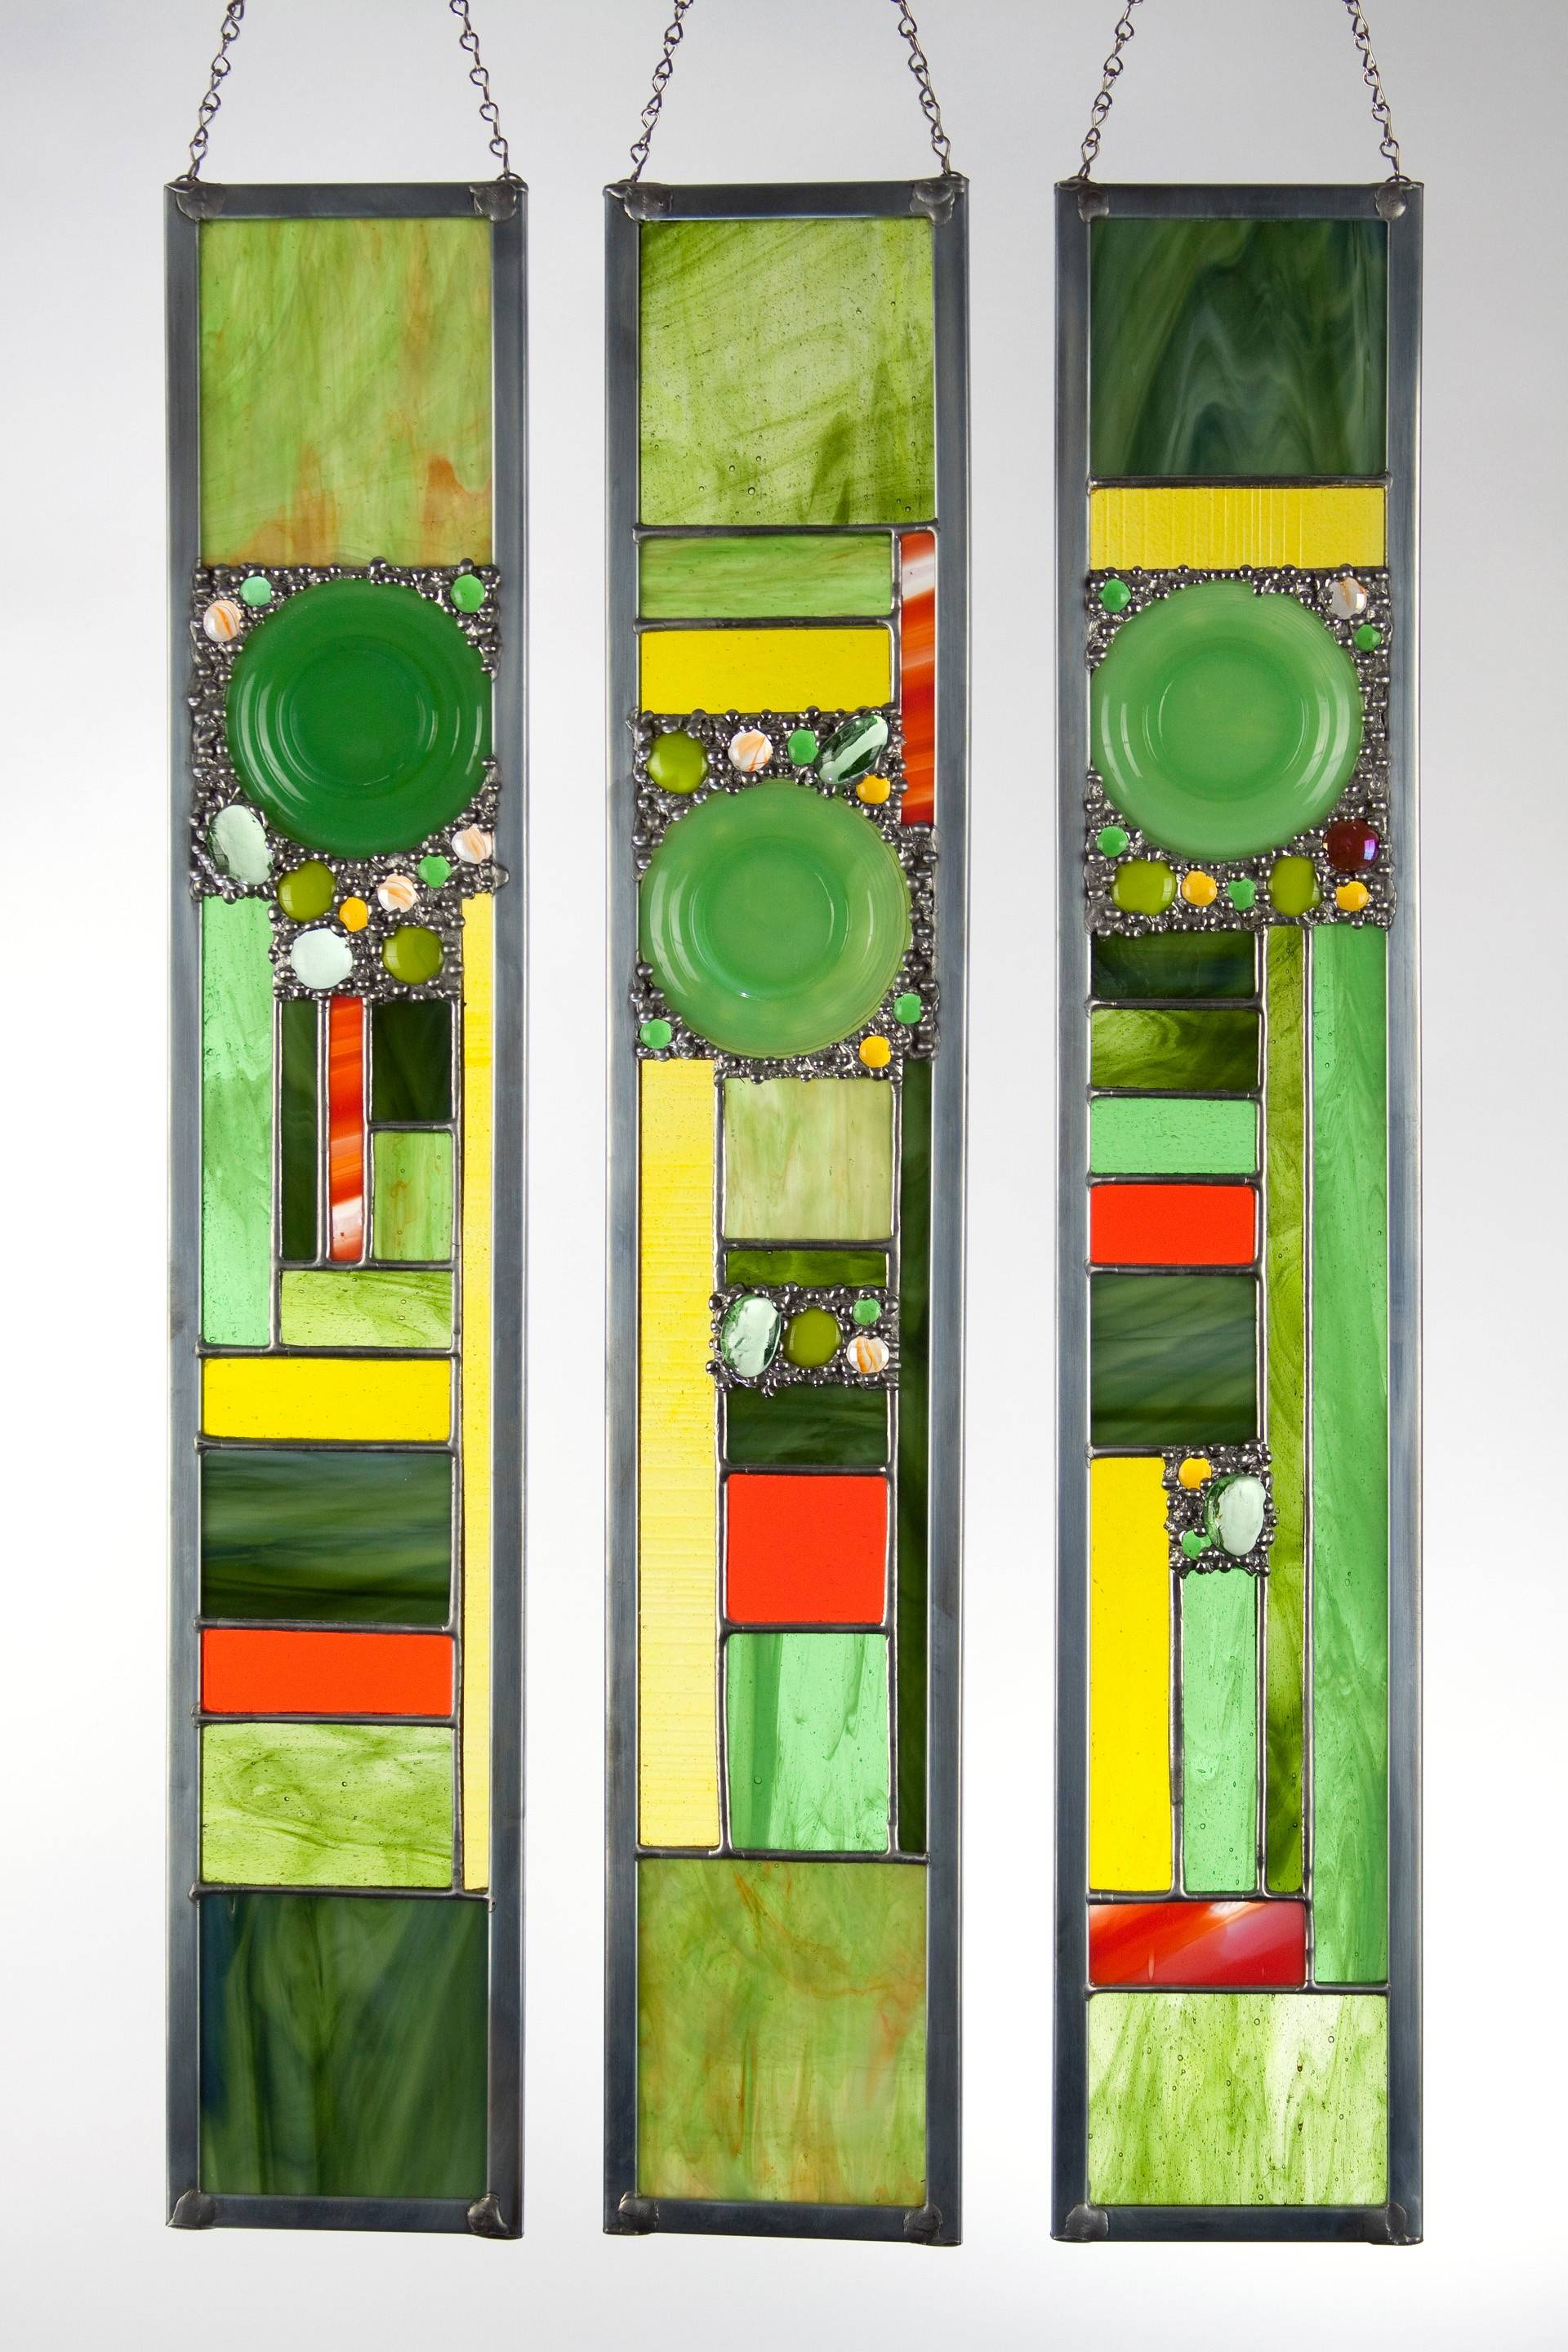 The glasswork of artist Retta Henstschel is featured in the 12th Annual Arts Festival in Bartlett.